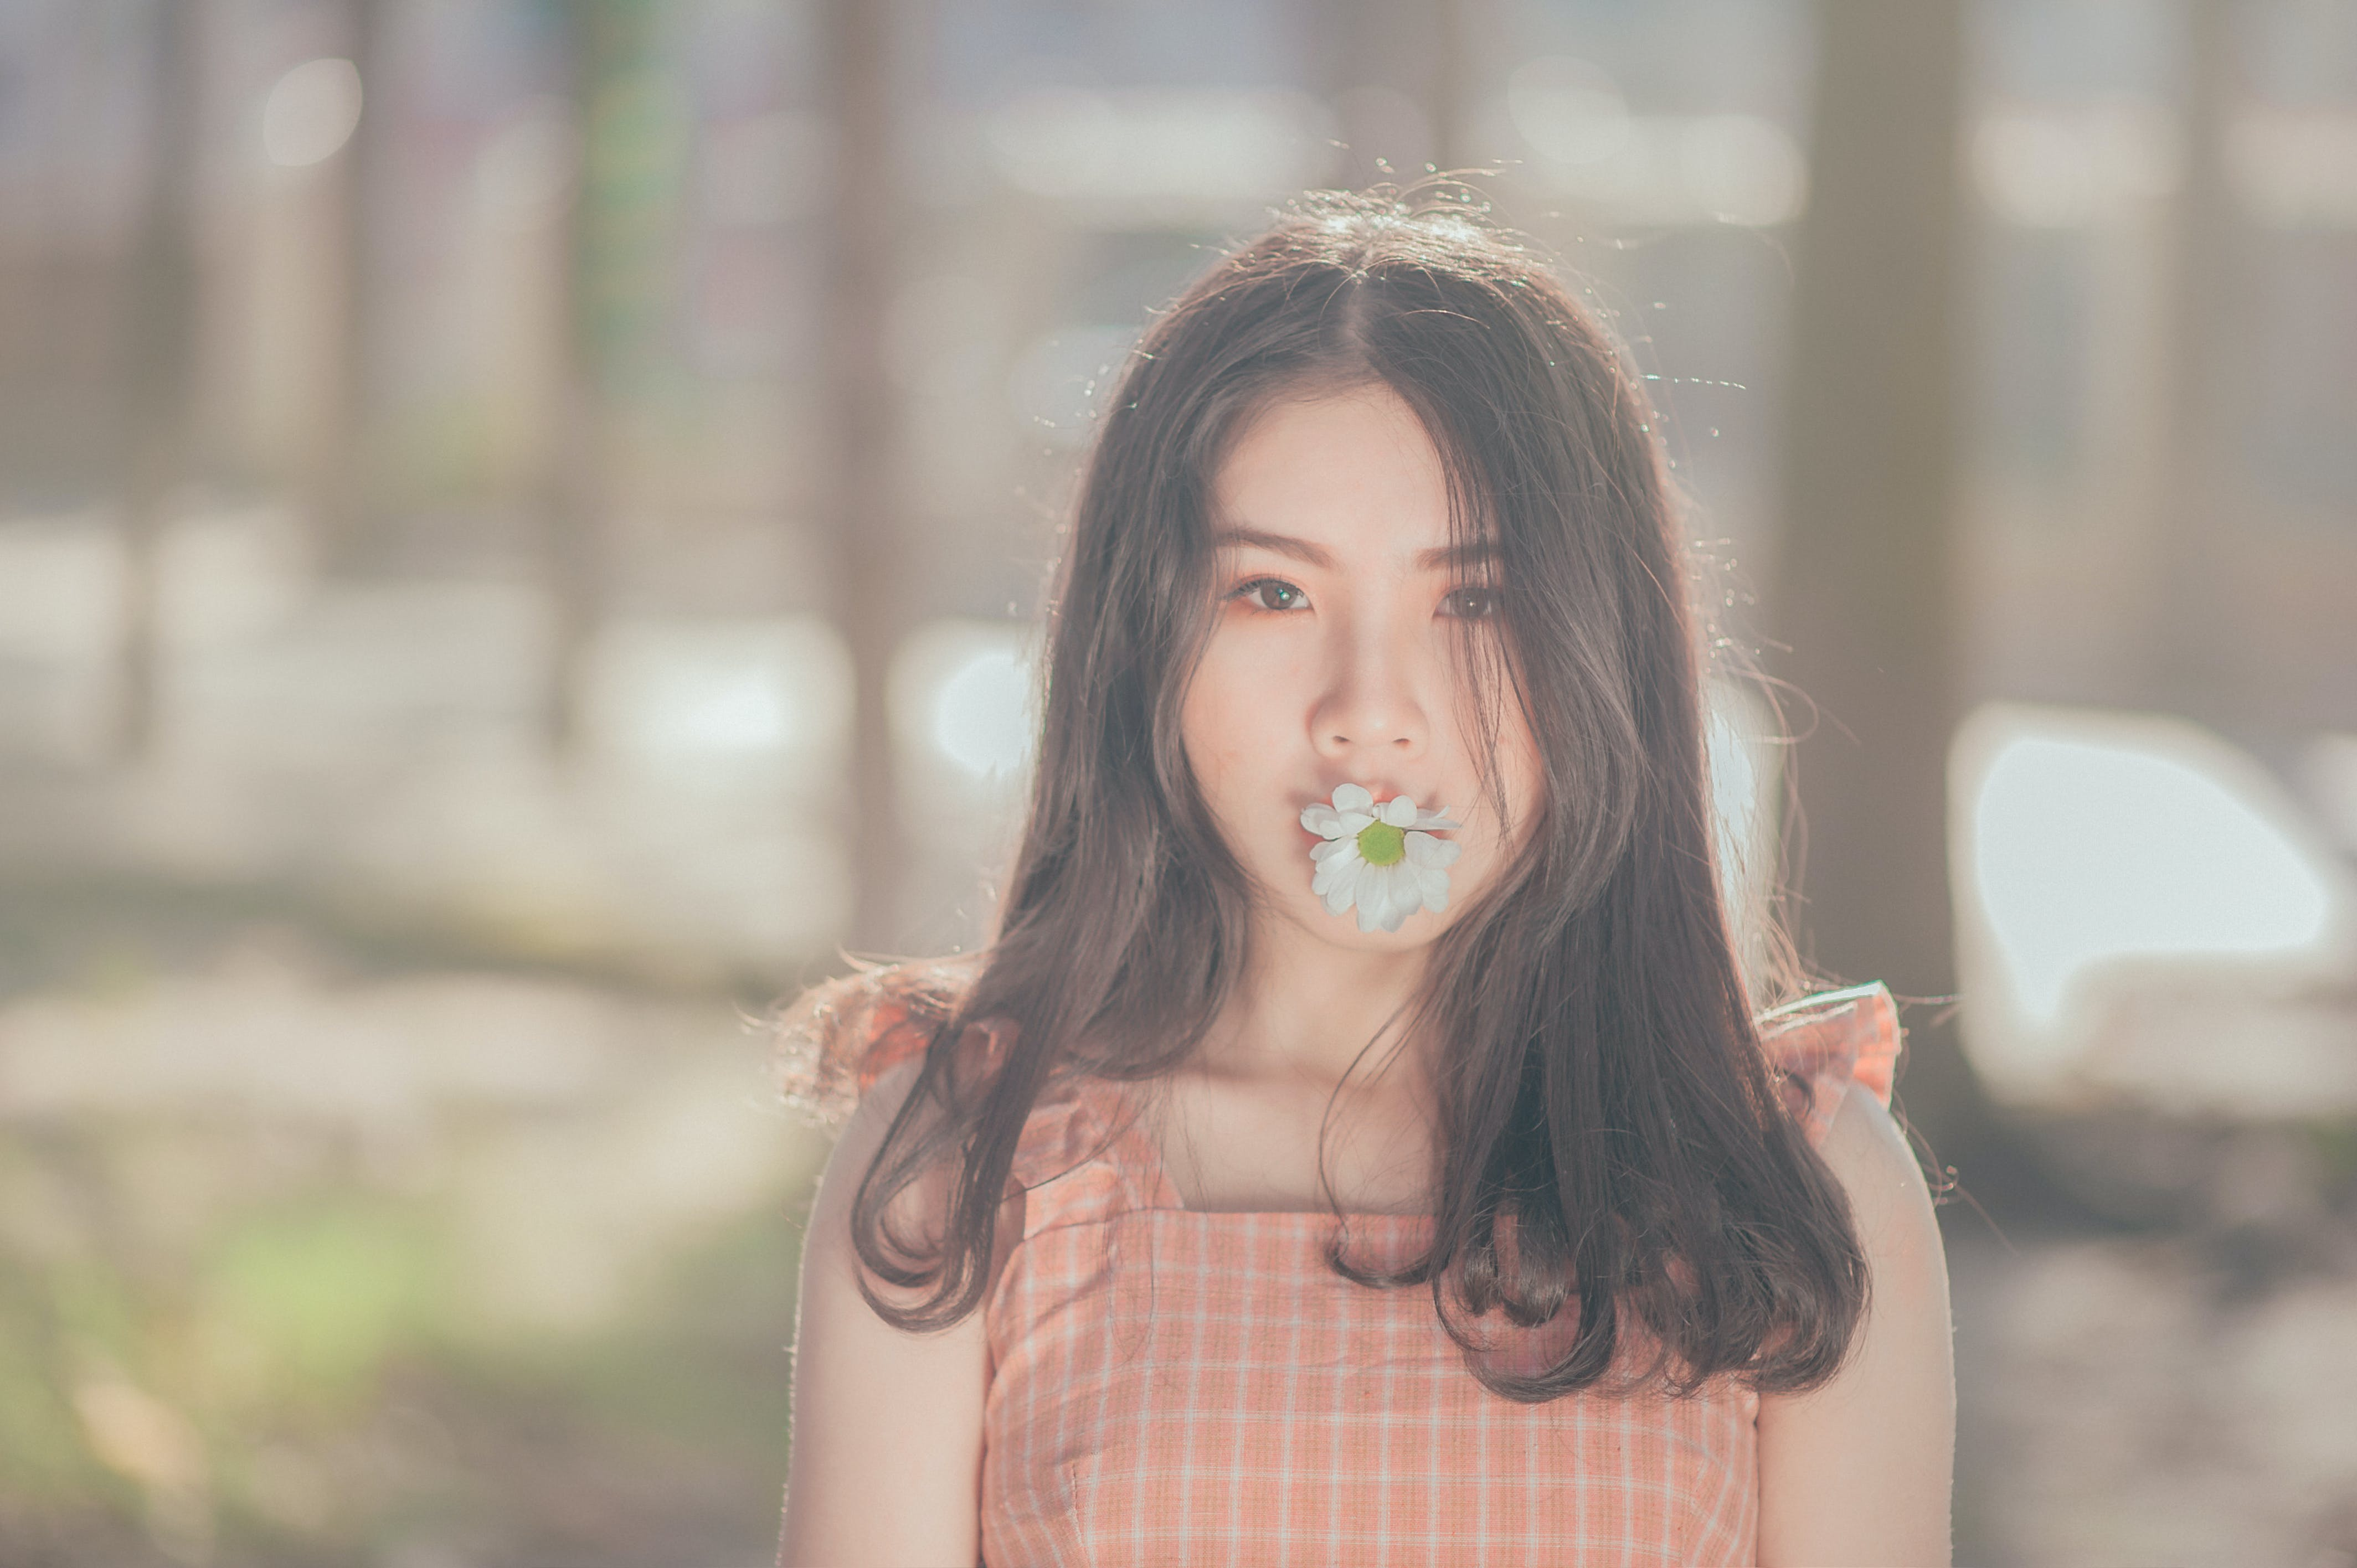 Photo of Woman with Flower on her Mouth